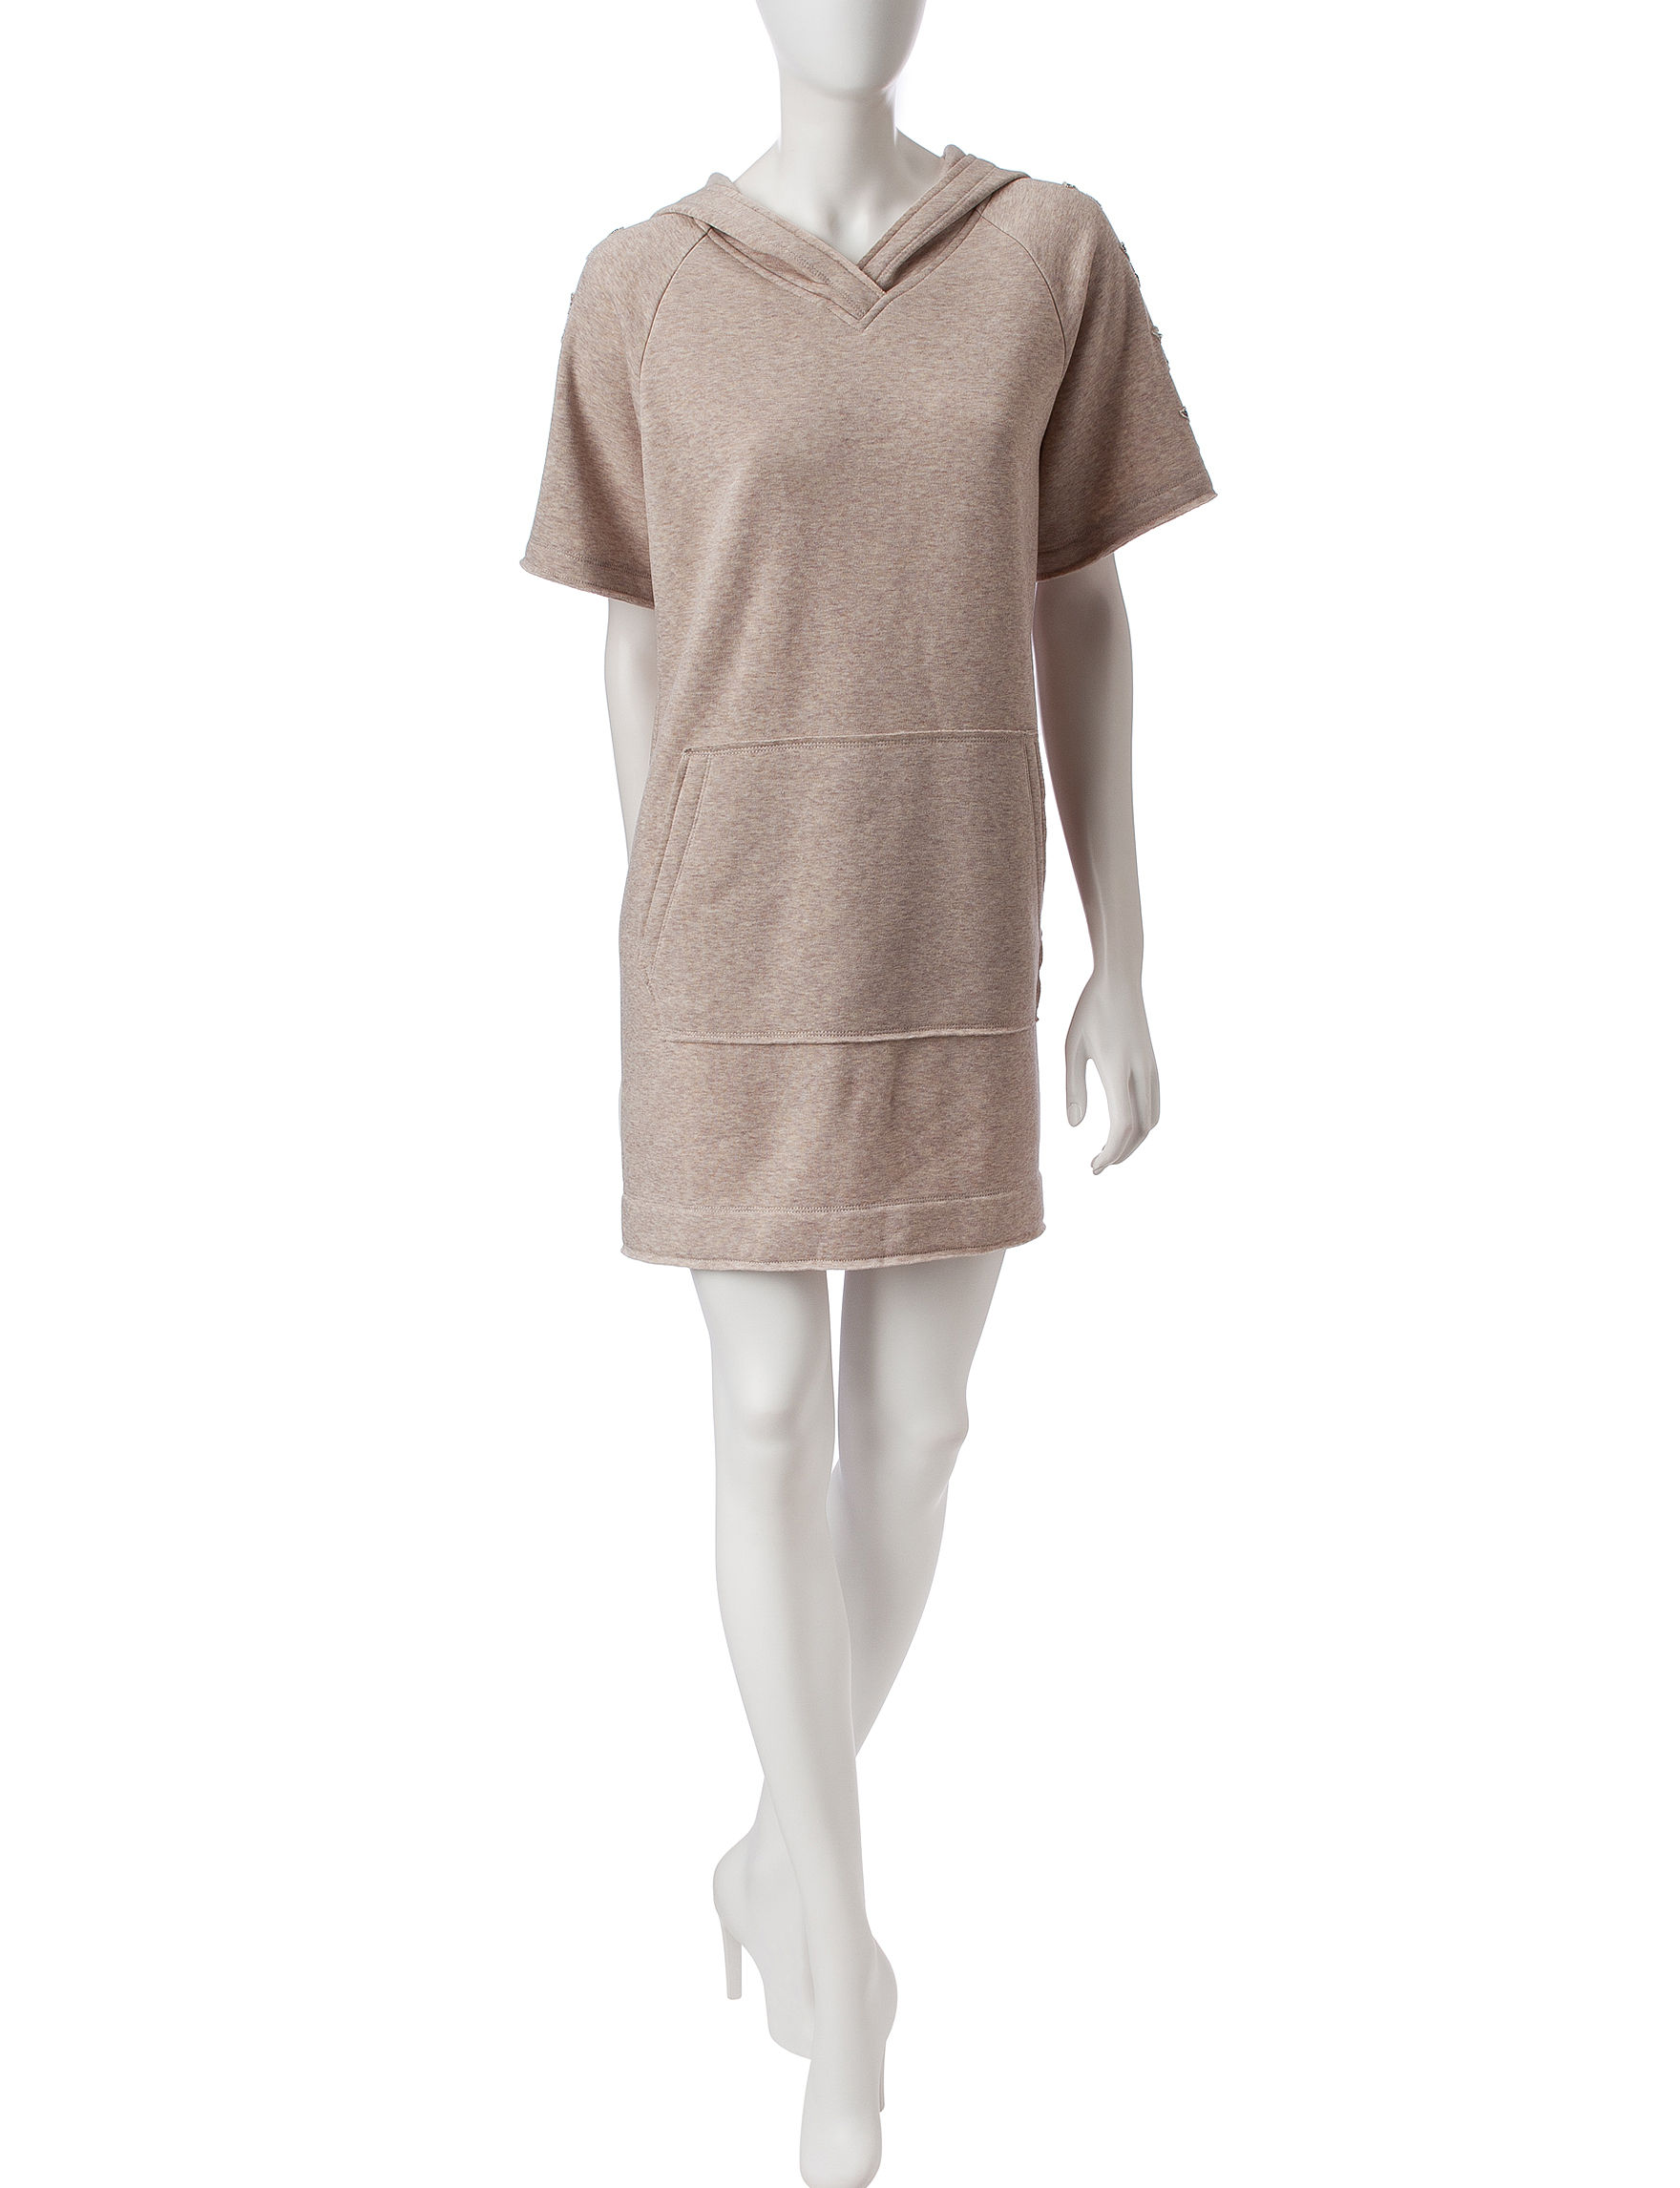 Nic Nation Beige Everyday & Casual Sweater Dresses